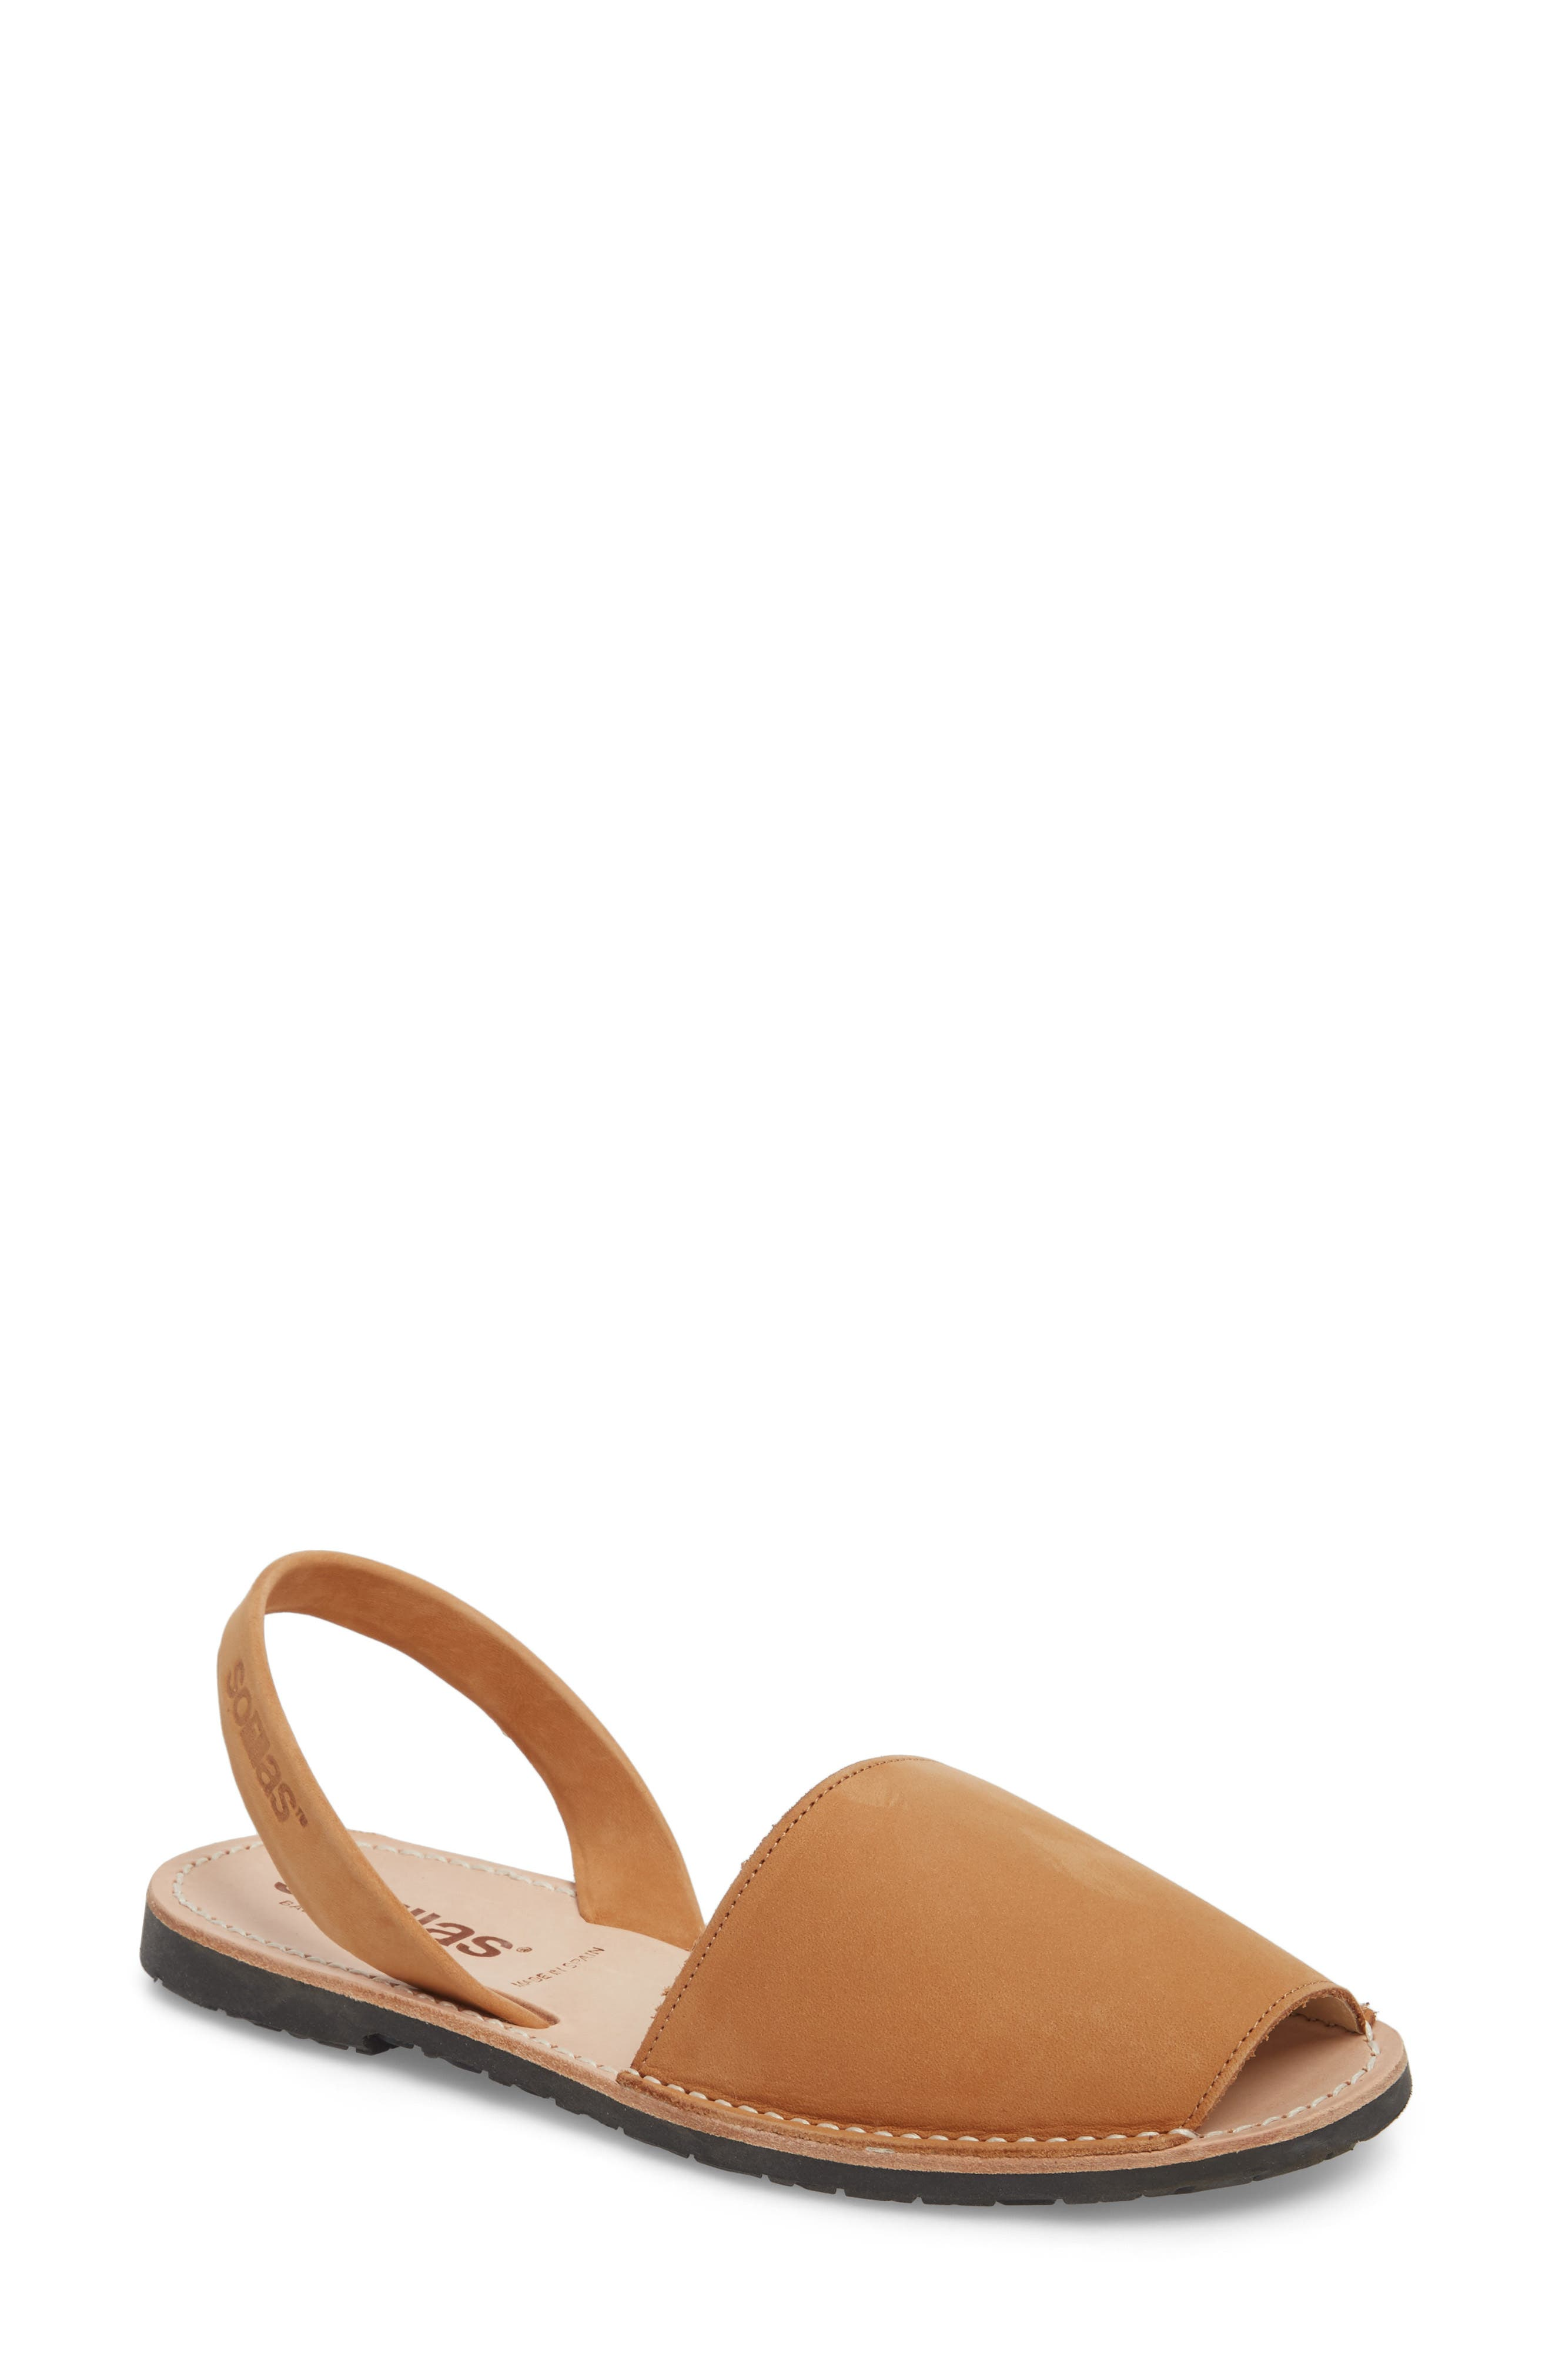 Flat Sandal,                         Main,                         color, Tan